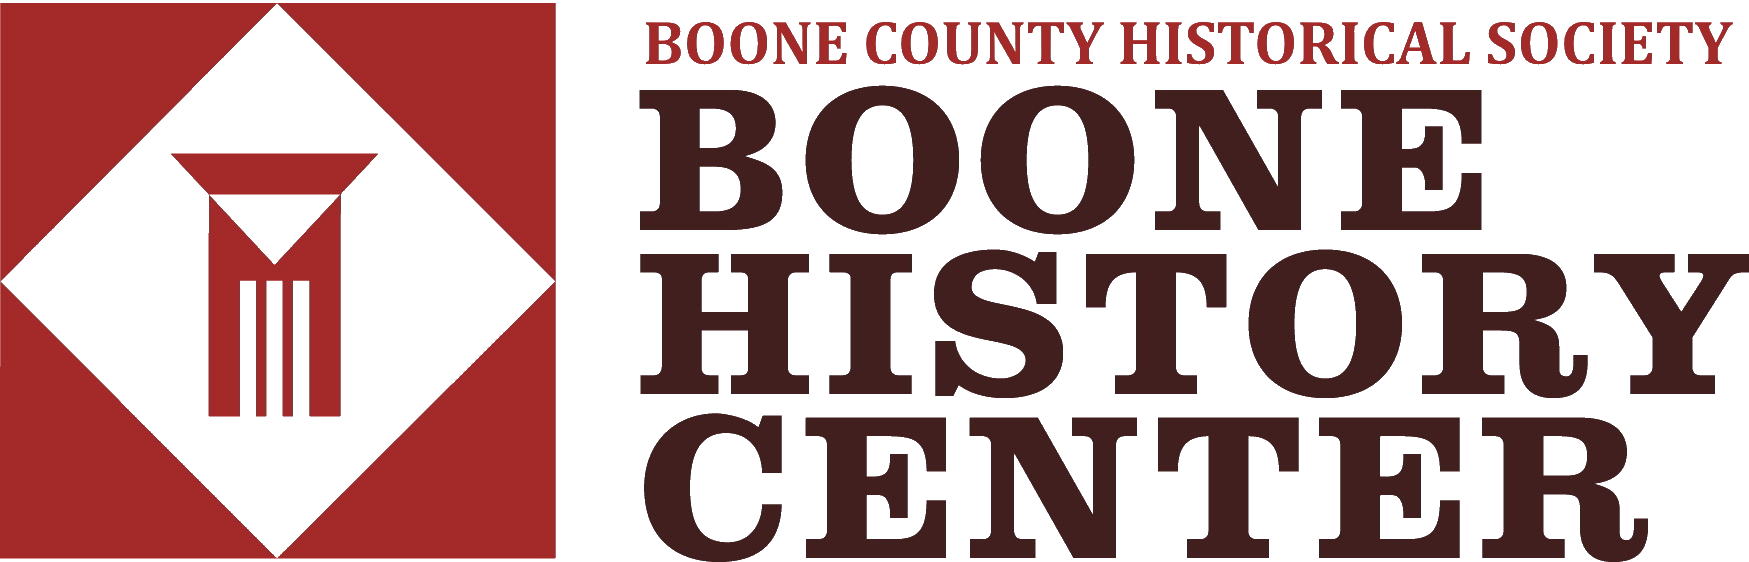 Boone History Center